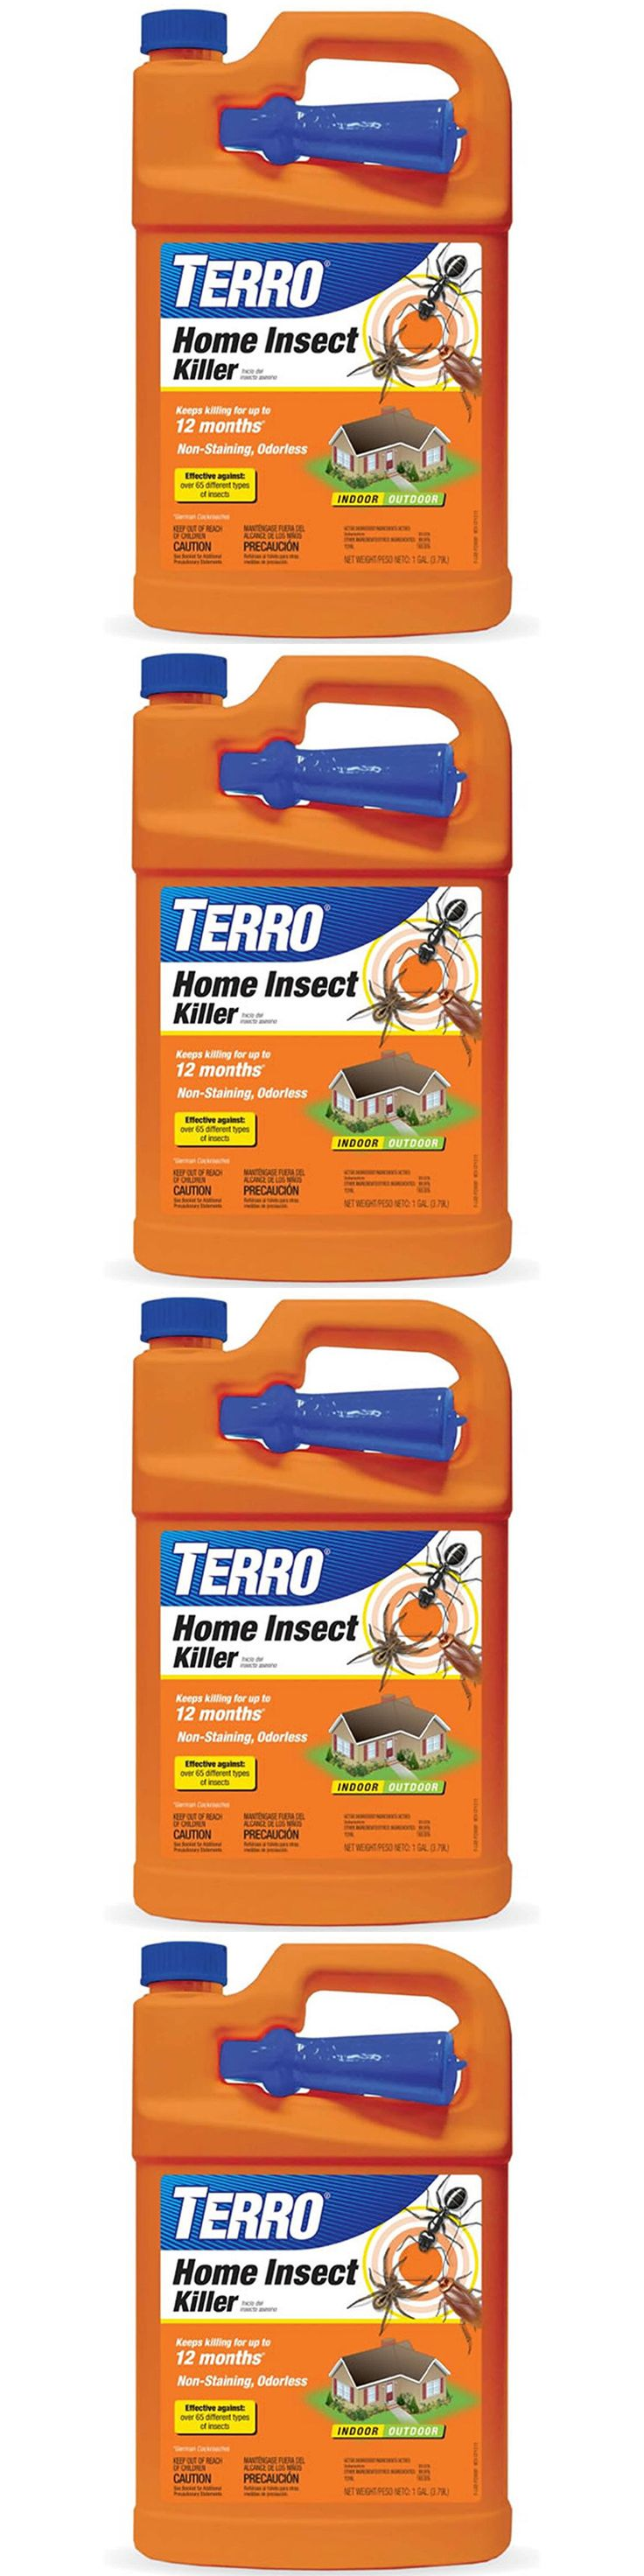 Foggers 181037: Insect Bug Spray Killer Roach Ant Spider Home Indoor Outdoor Pest Control 1-Gal -> BUY IT NOW ONLY: $37.95 on eBay!